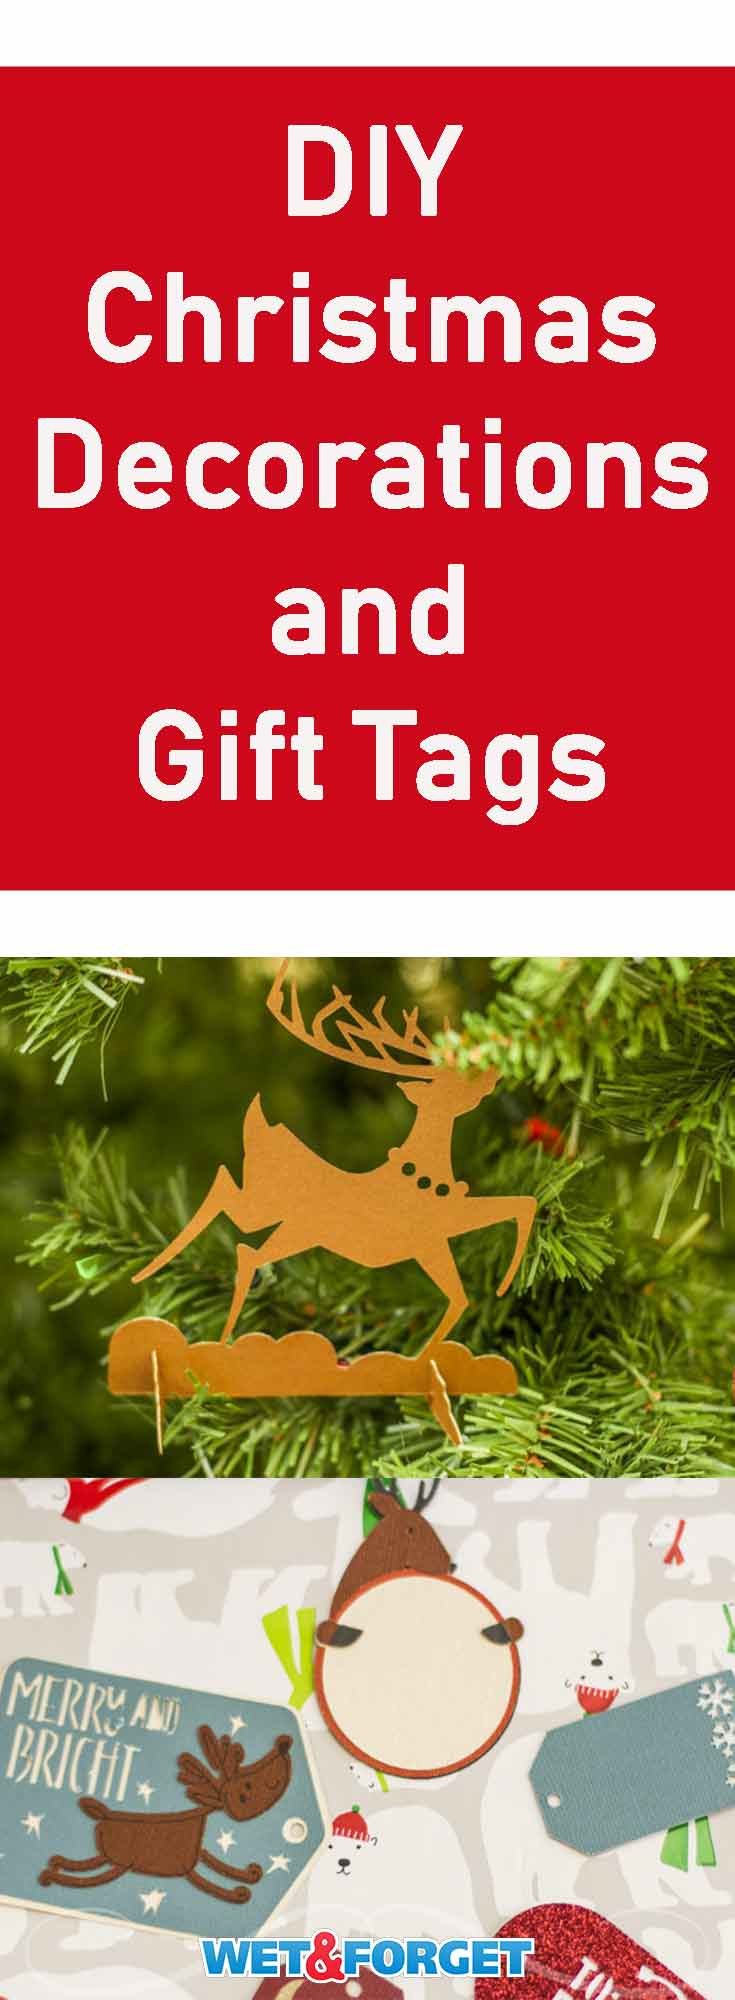 Finish your gift wrapping and decorating with these easy DIY paper decorations and gift tags!